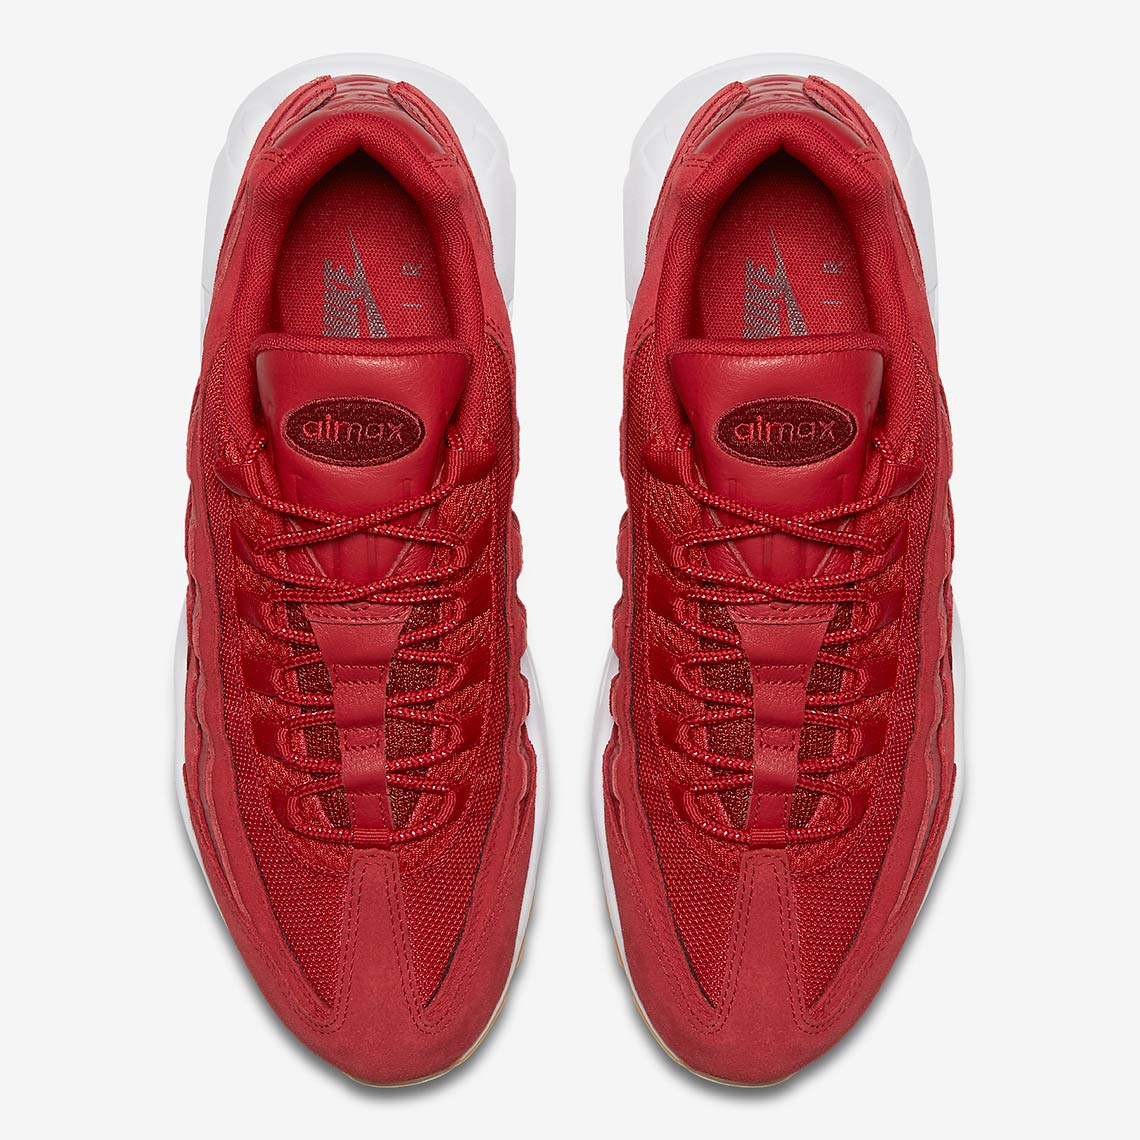 ea87f293ed ... red crush mens shoe main container 6bdd0 658b8; new zealand nike air  max 95 premium available at nike 170. color sail desert sand